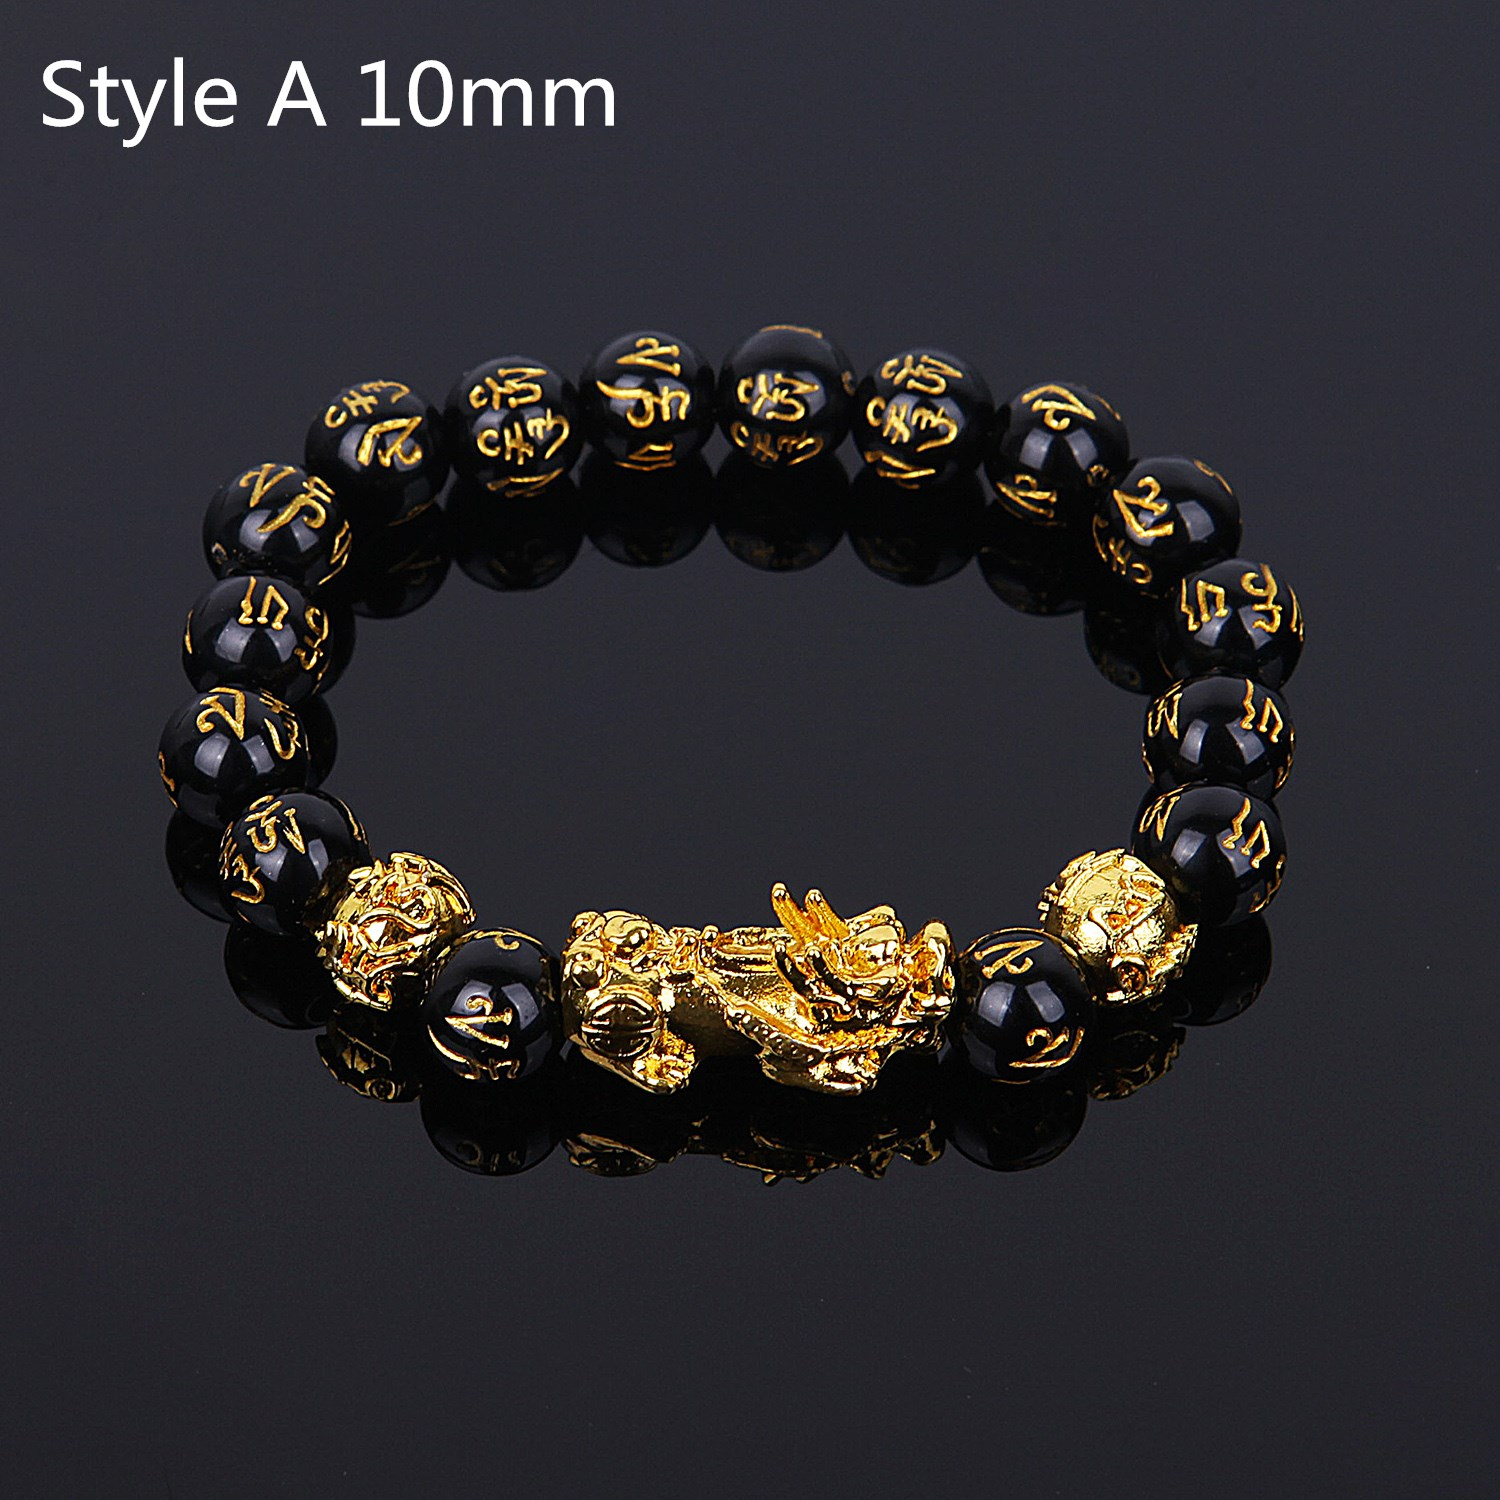 Style A 10mm